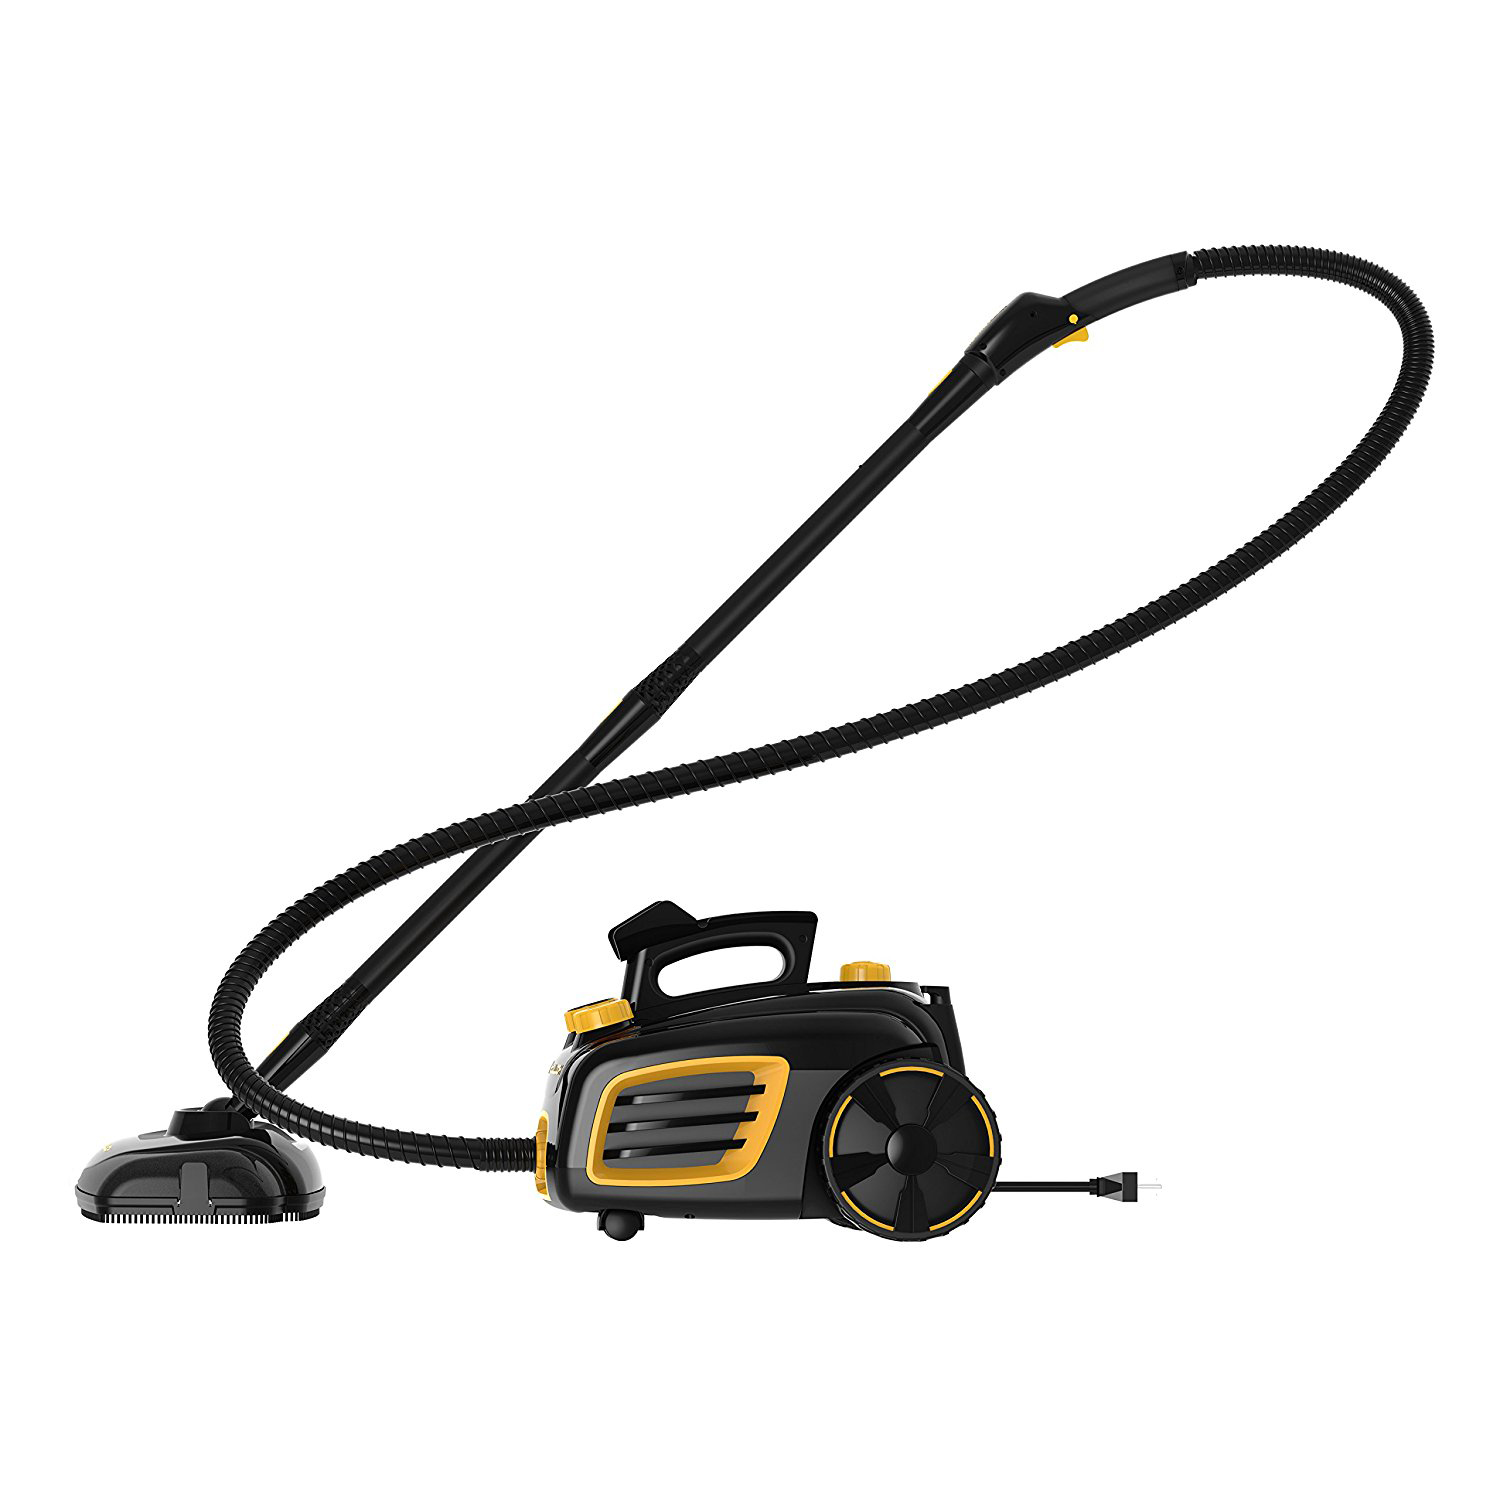 Mcculloch Canister Deep Clean Carpet Amp Floor Steam Cleaner